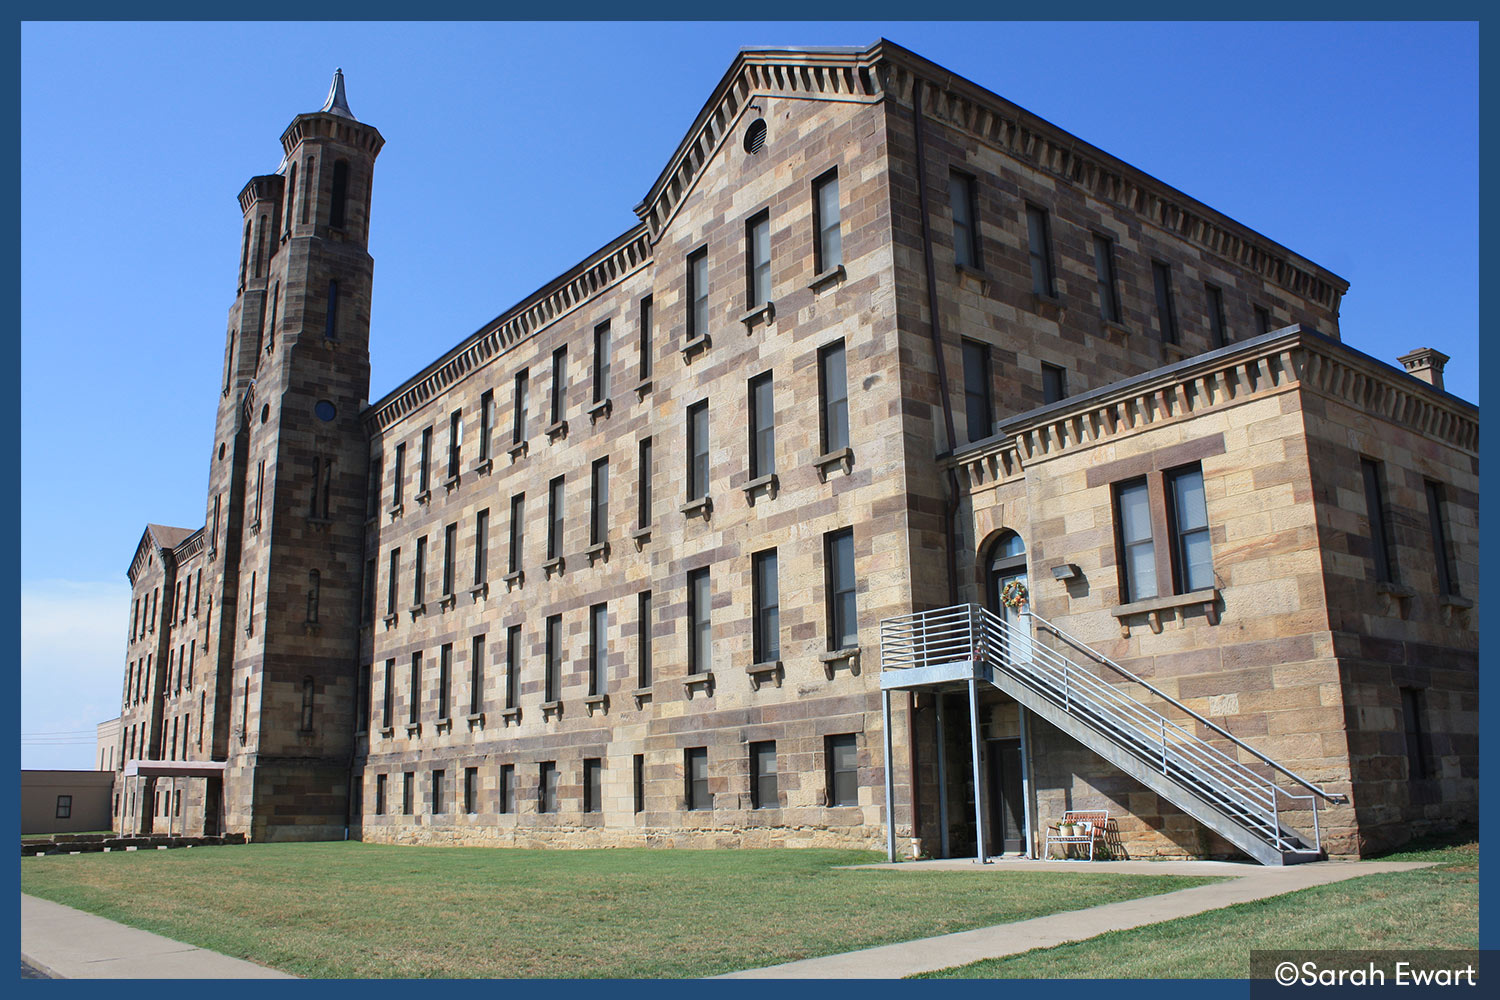 Cannelton Cotton Mill in Indiana